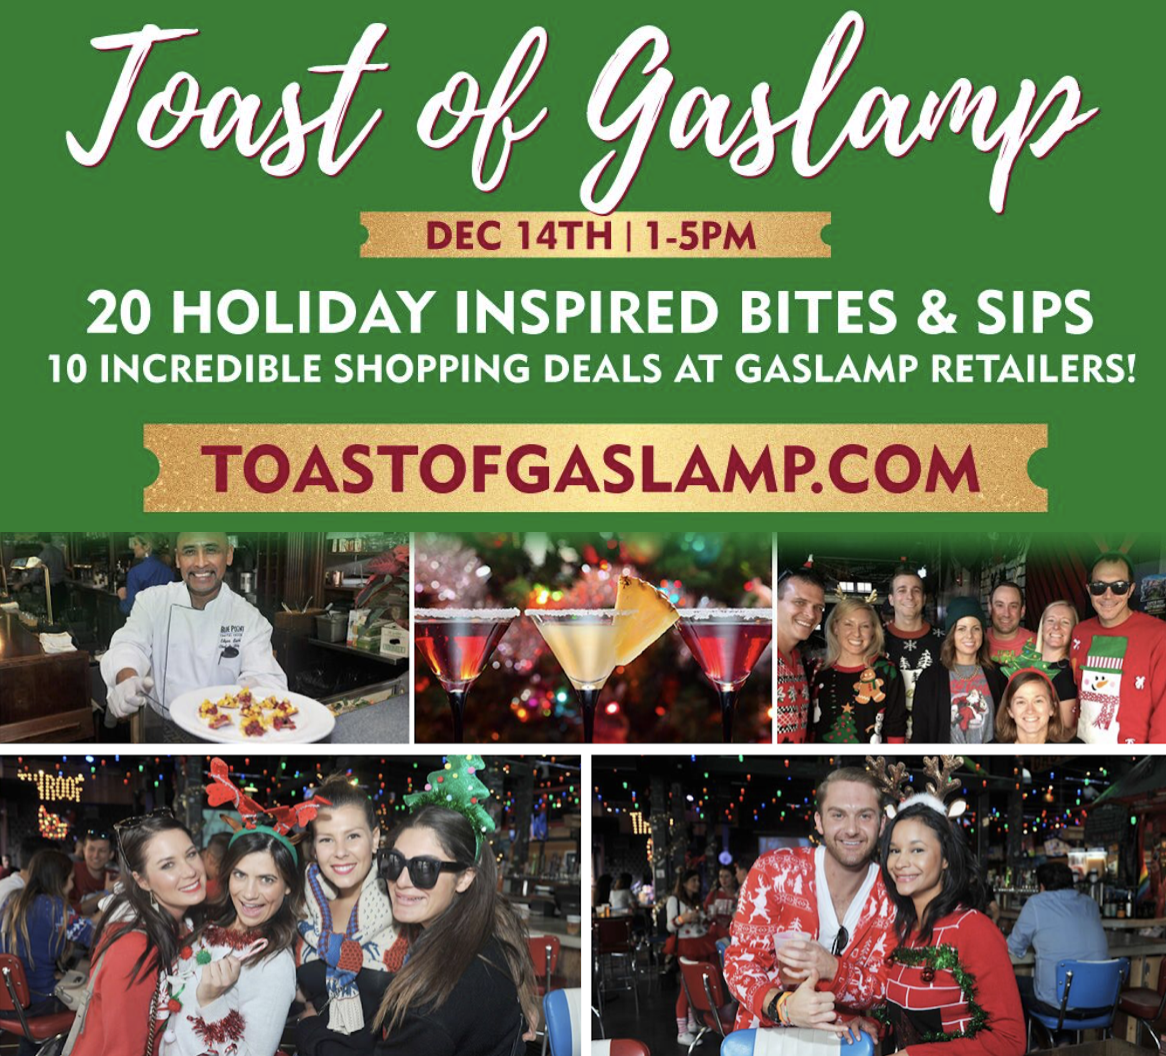 Save on passes & Enter to win tickets to 6th annual Toast Of Gaslamp on December 14!